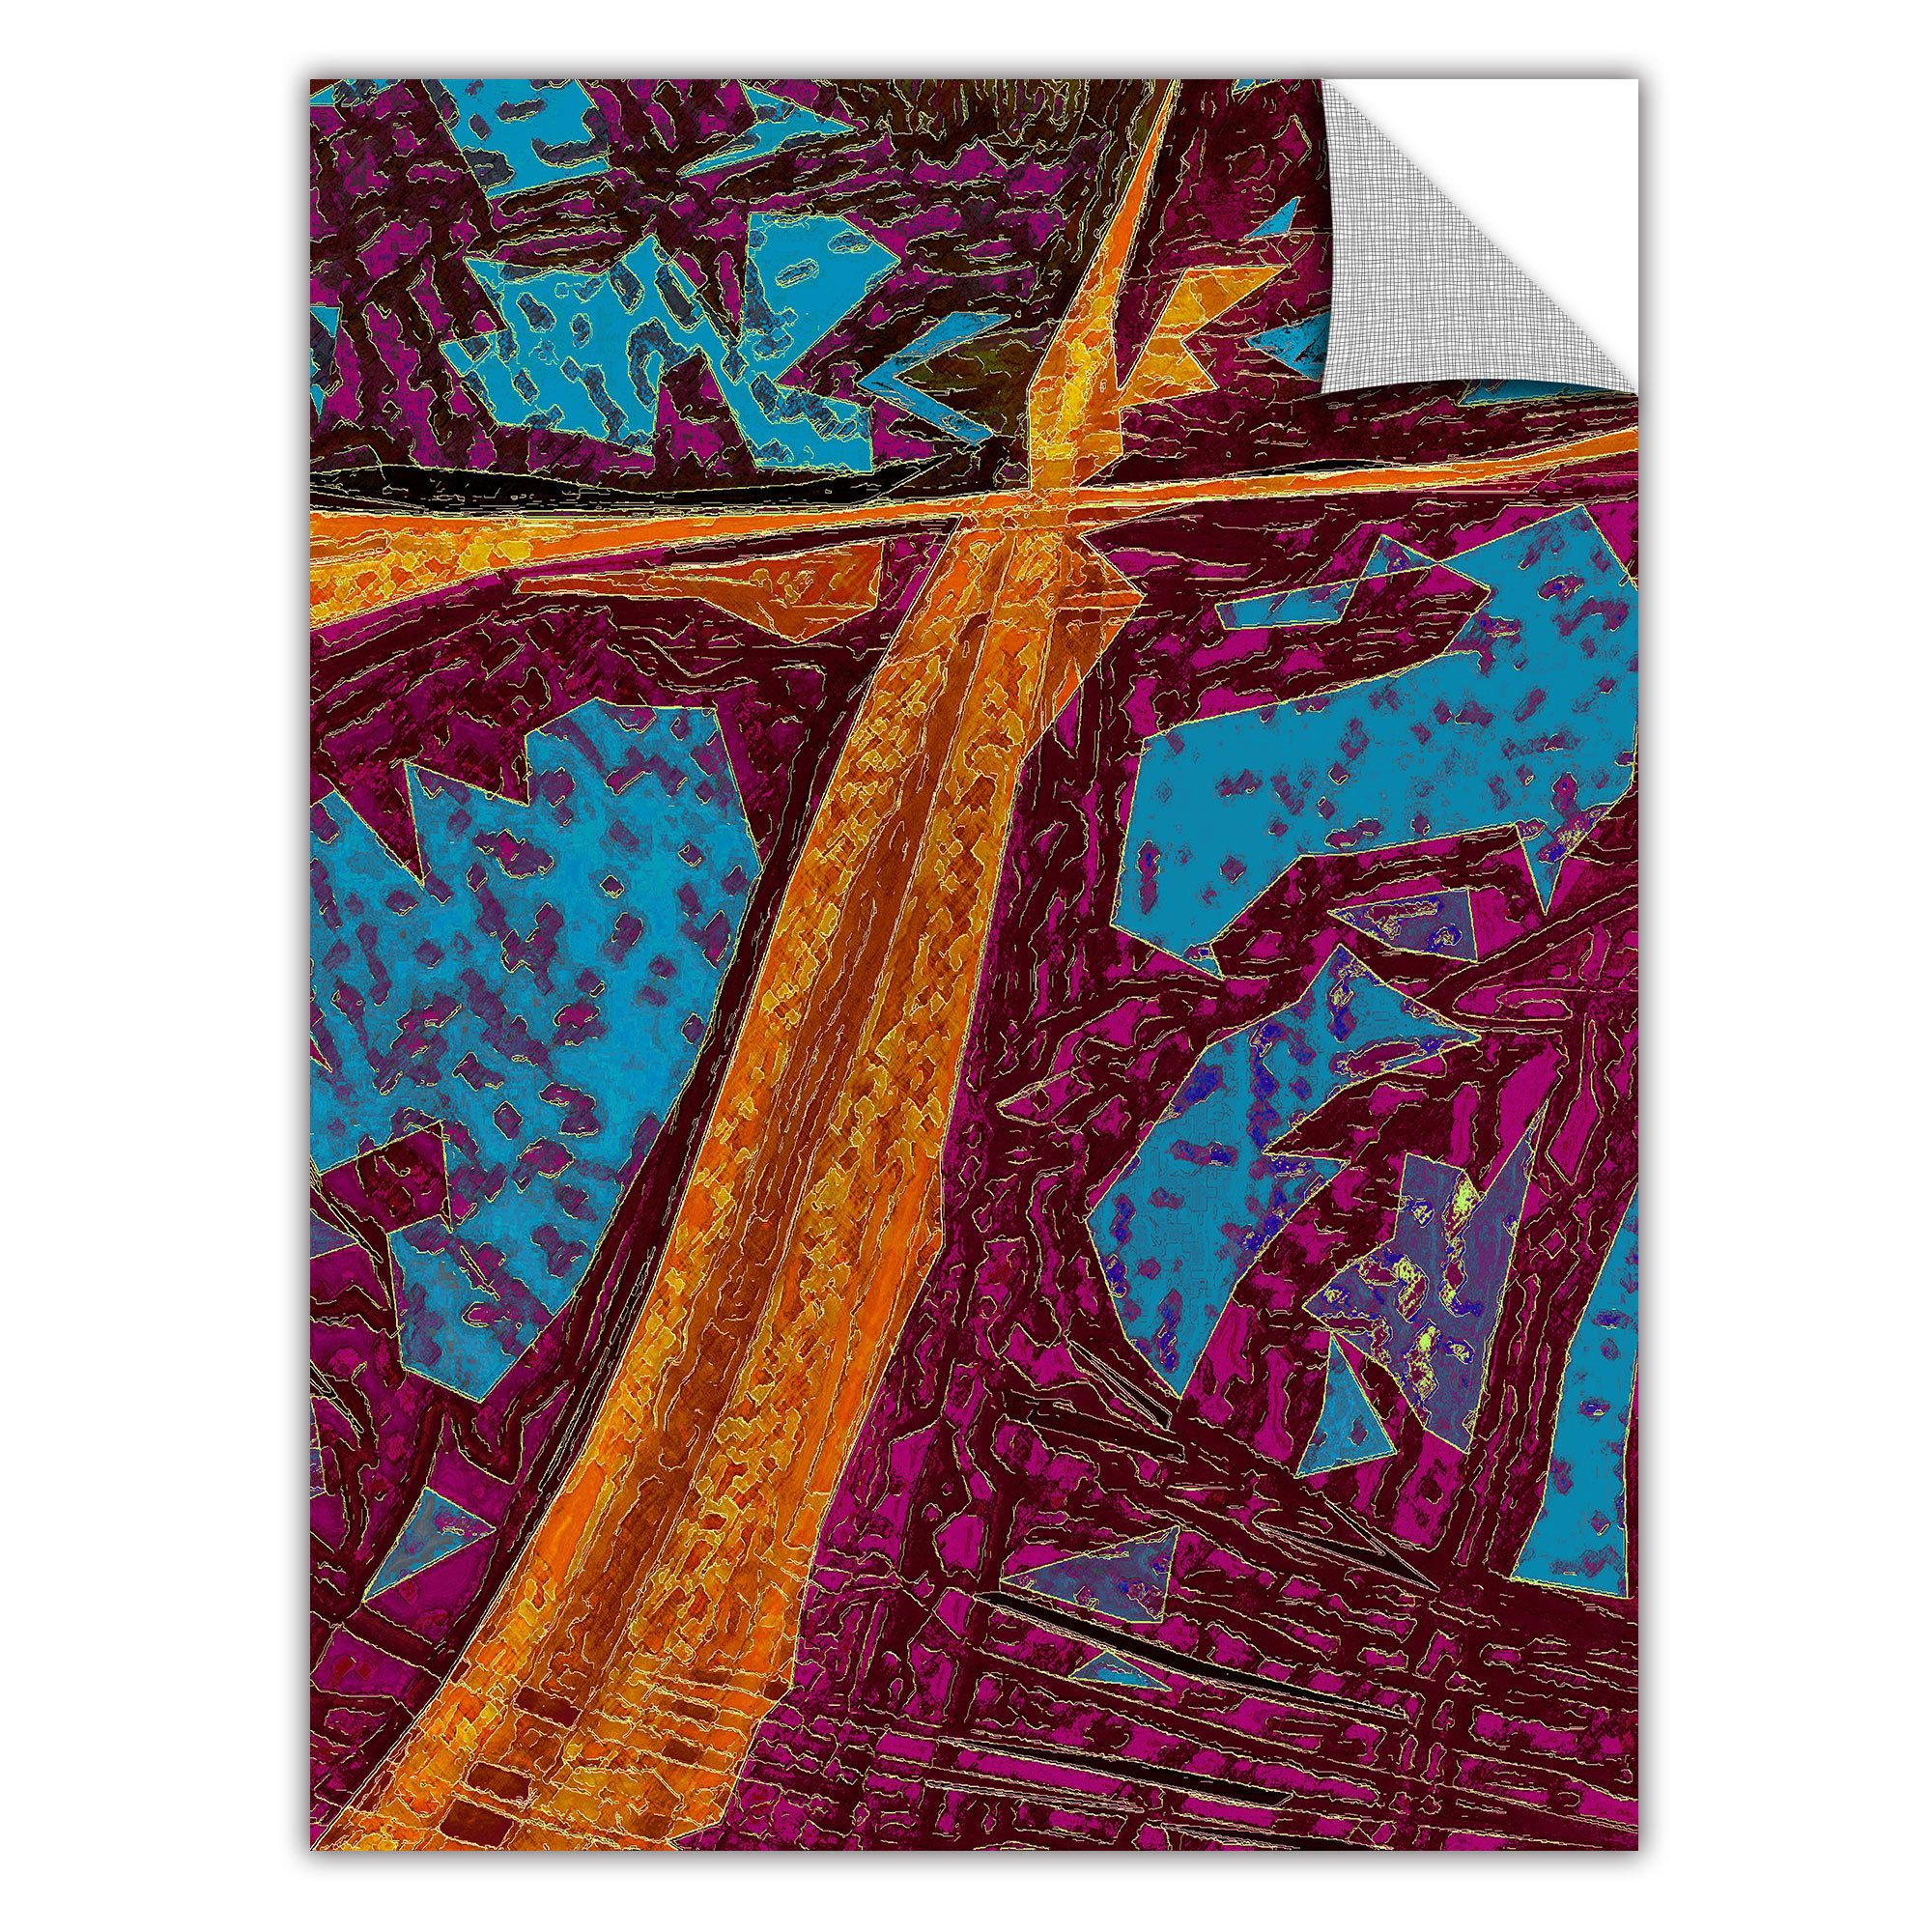 Removable wall art graphic - Artwall Artapeelz Dean Uhlinger South For The Winter Sur Para El Invierno Removable Wall